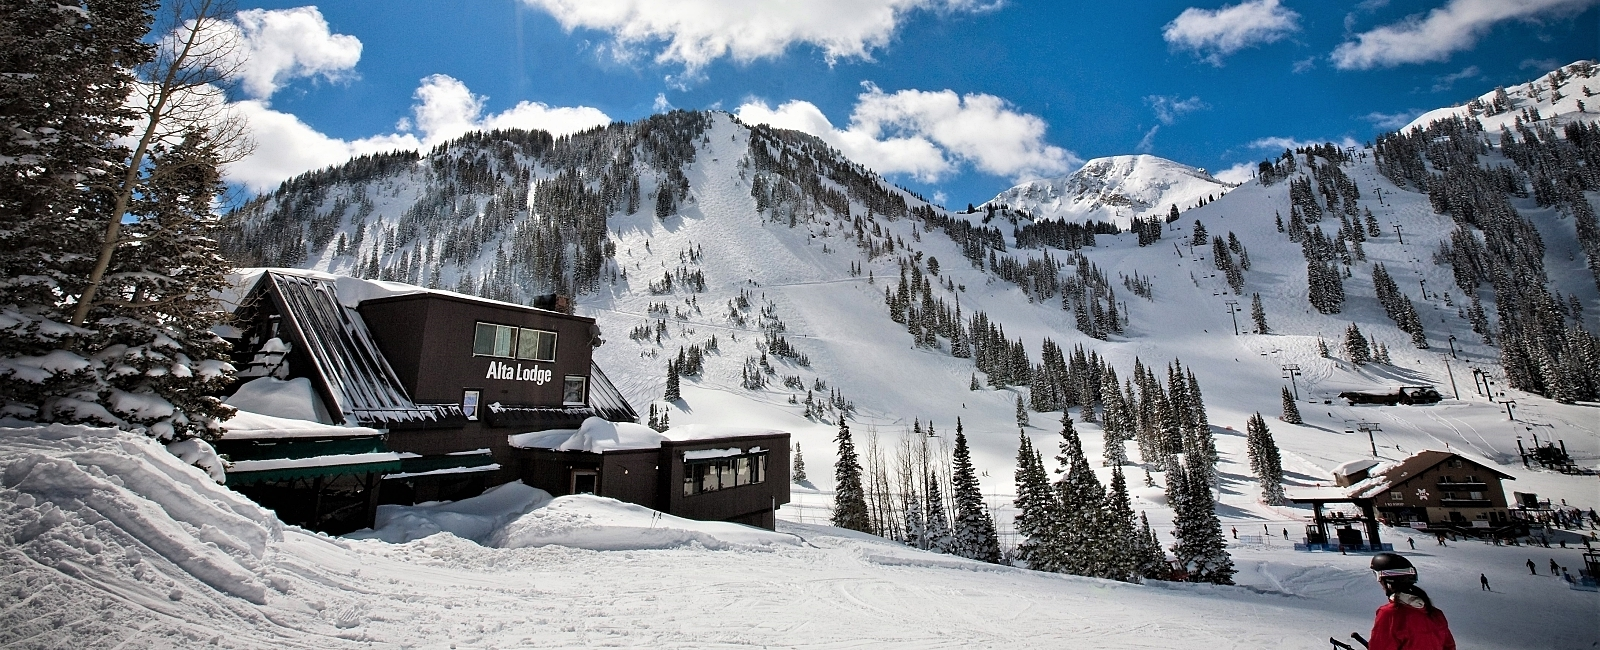 Alta Lodge - Alta Ski Area